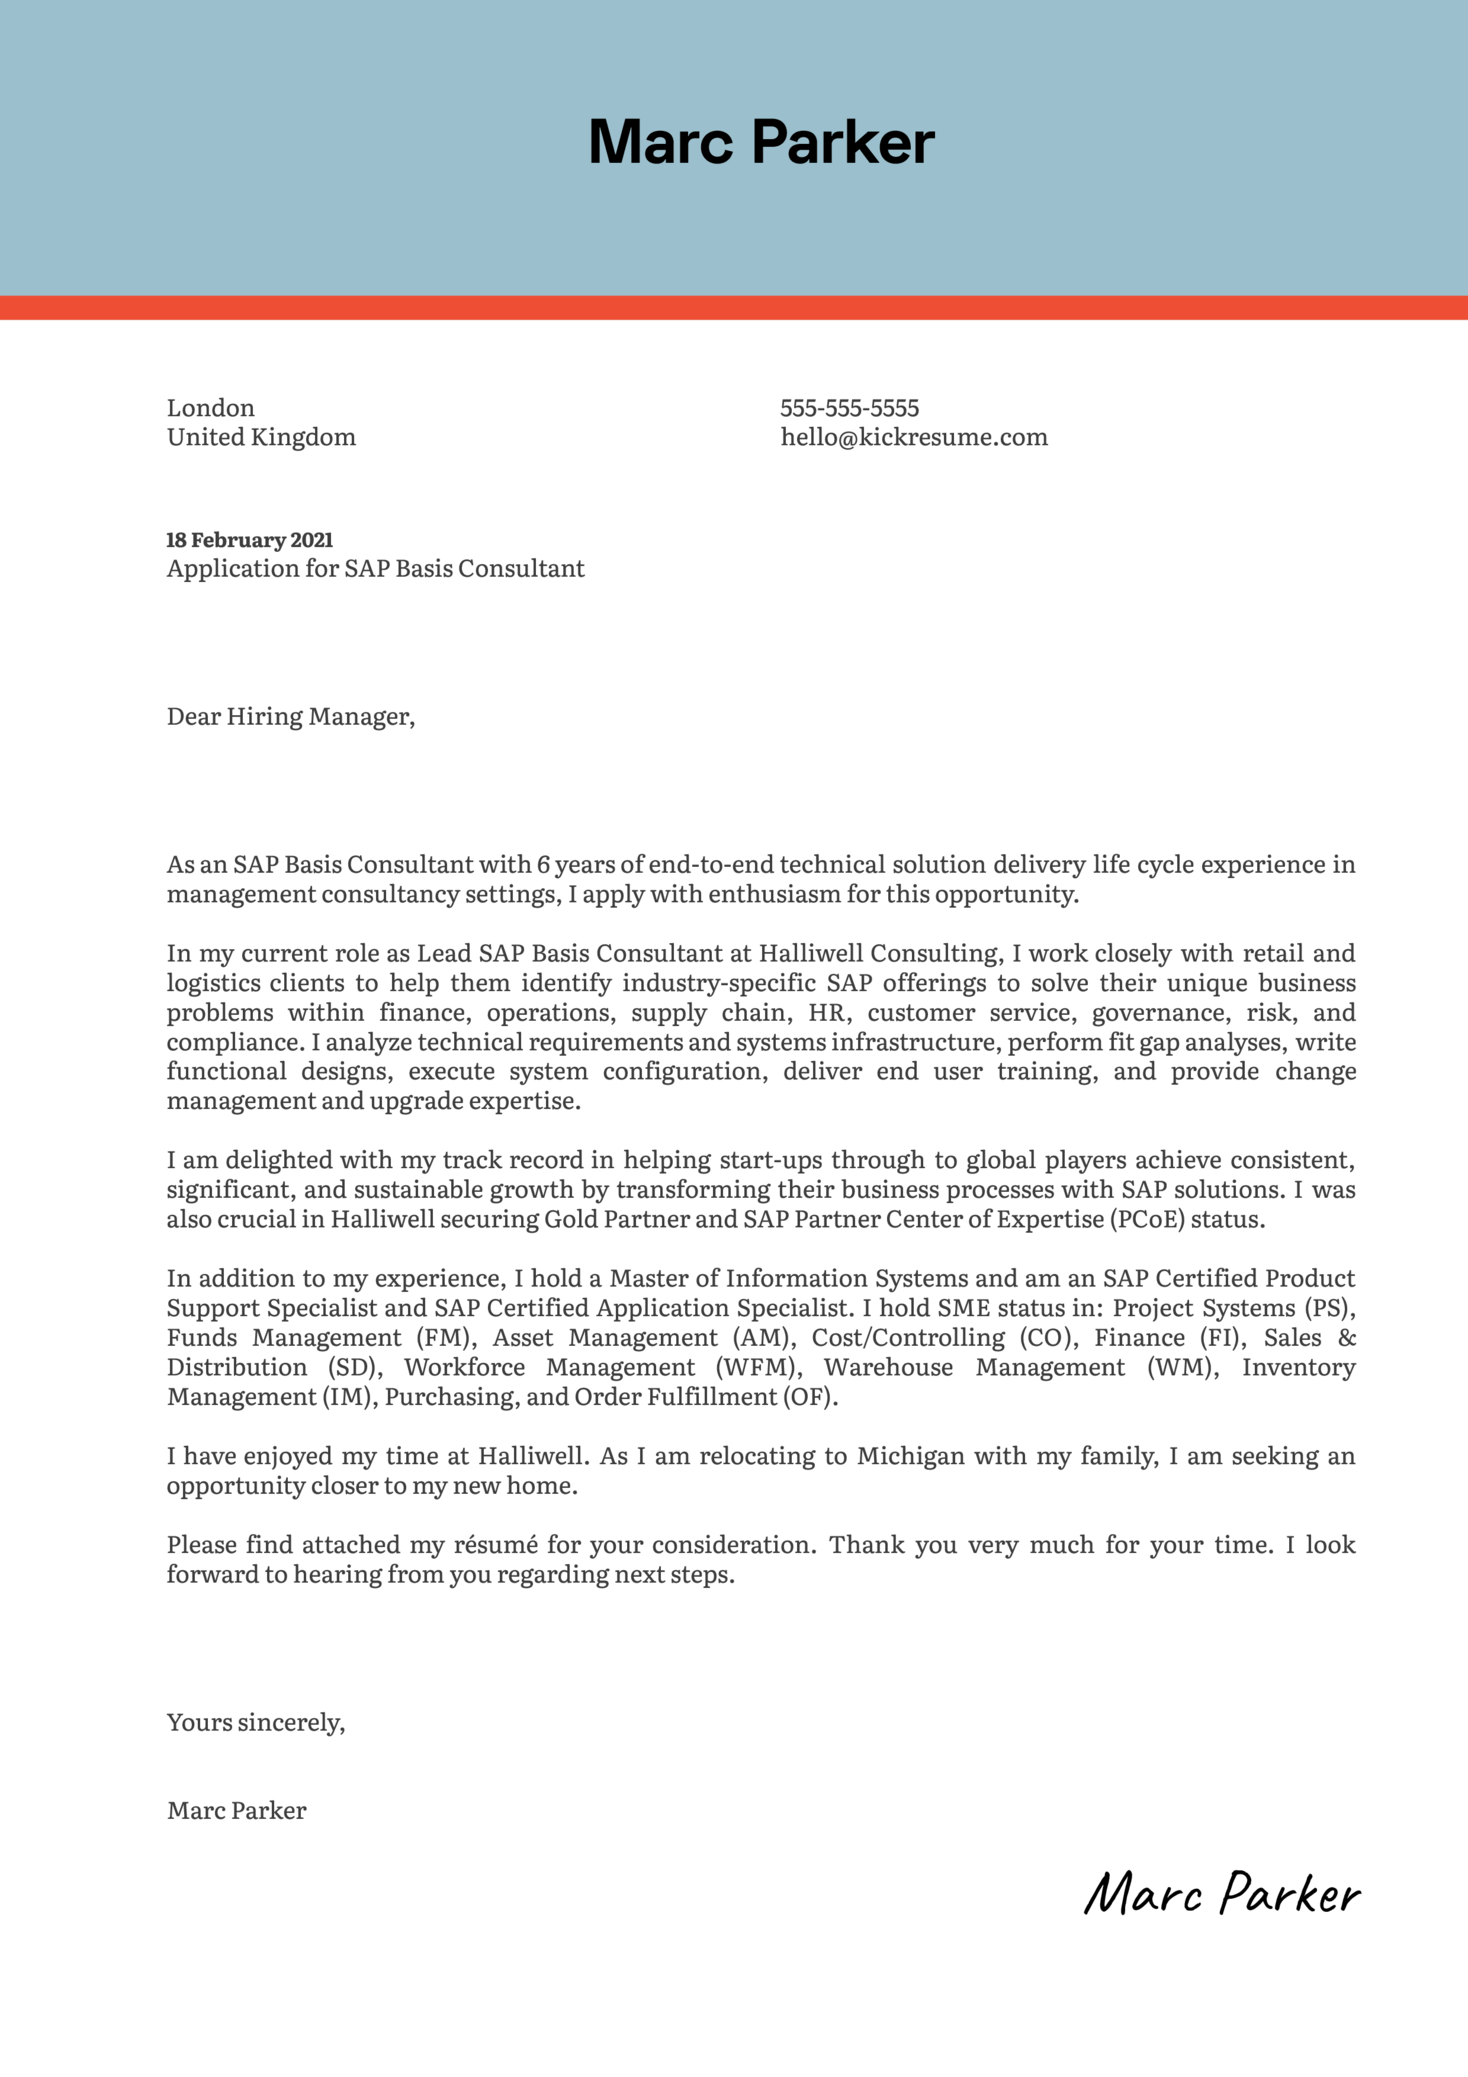 SAP Basis Consultant Cover Letter Example